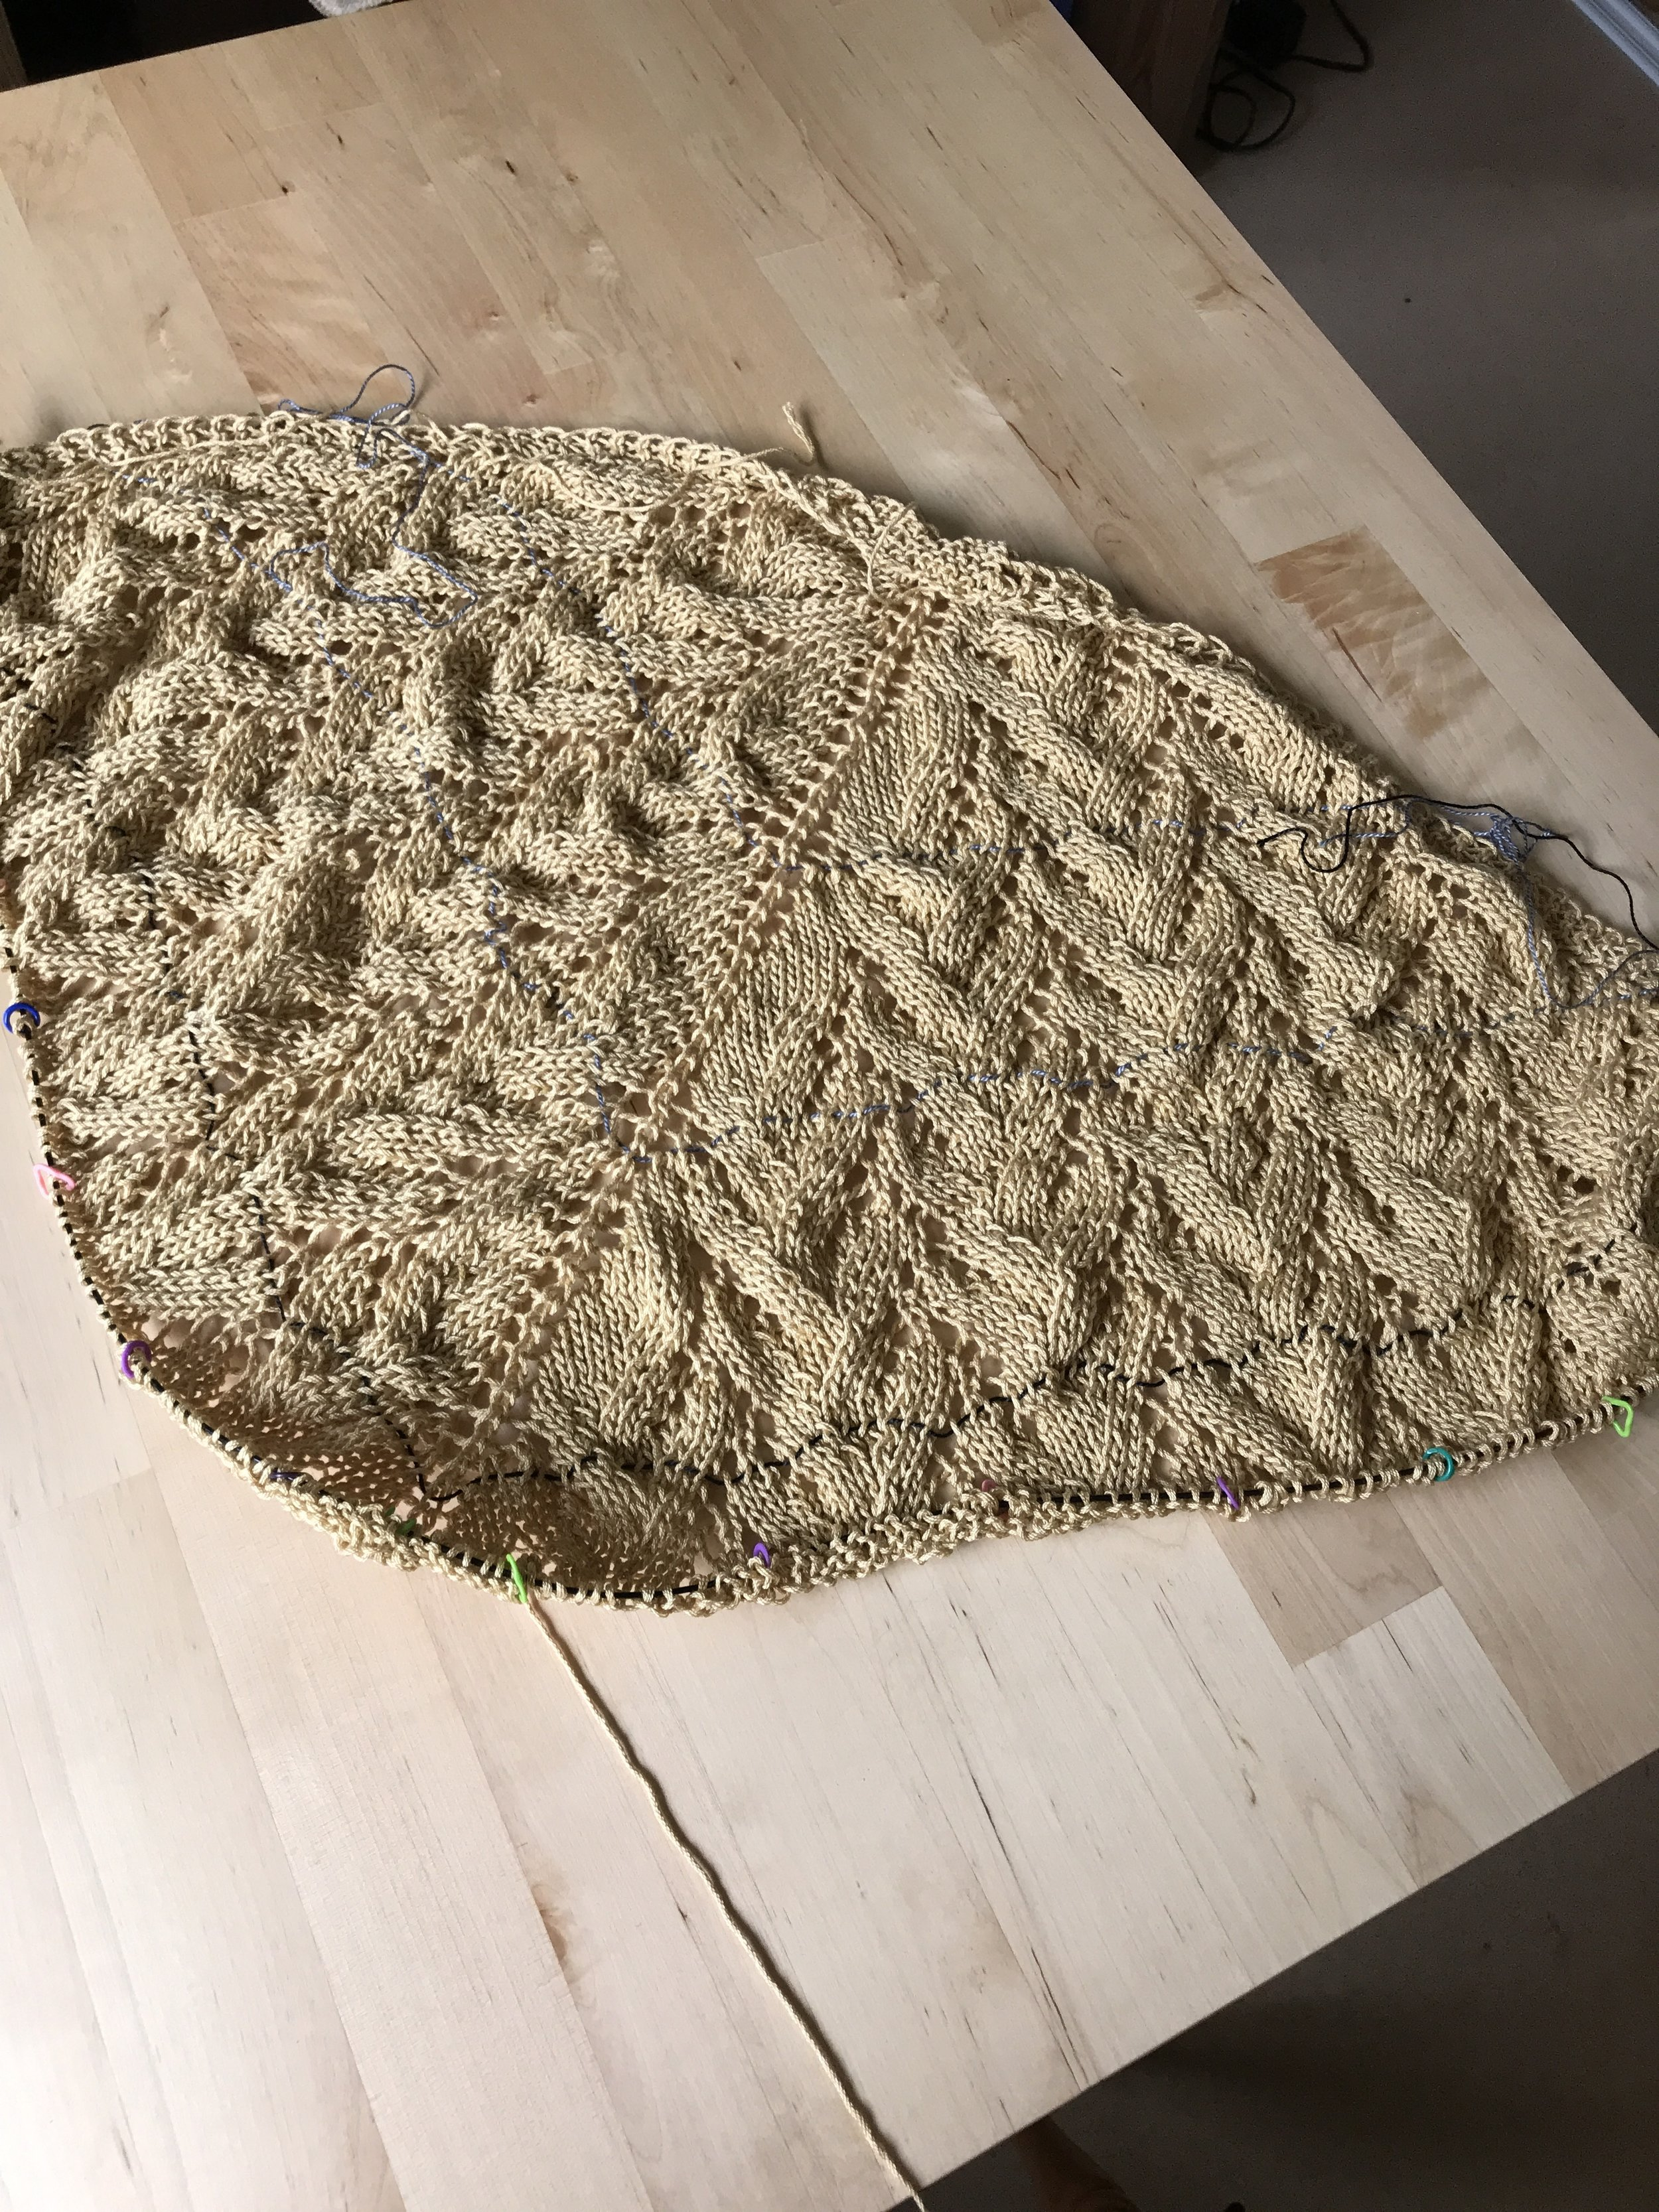 Unblocked, it's a bit hard to see the beauty of this shawl.